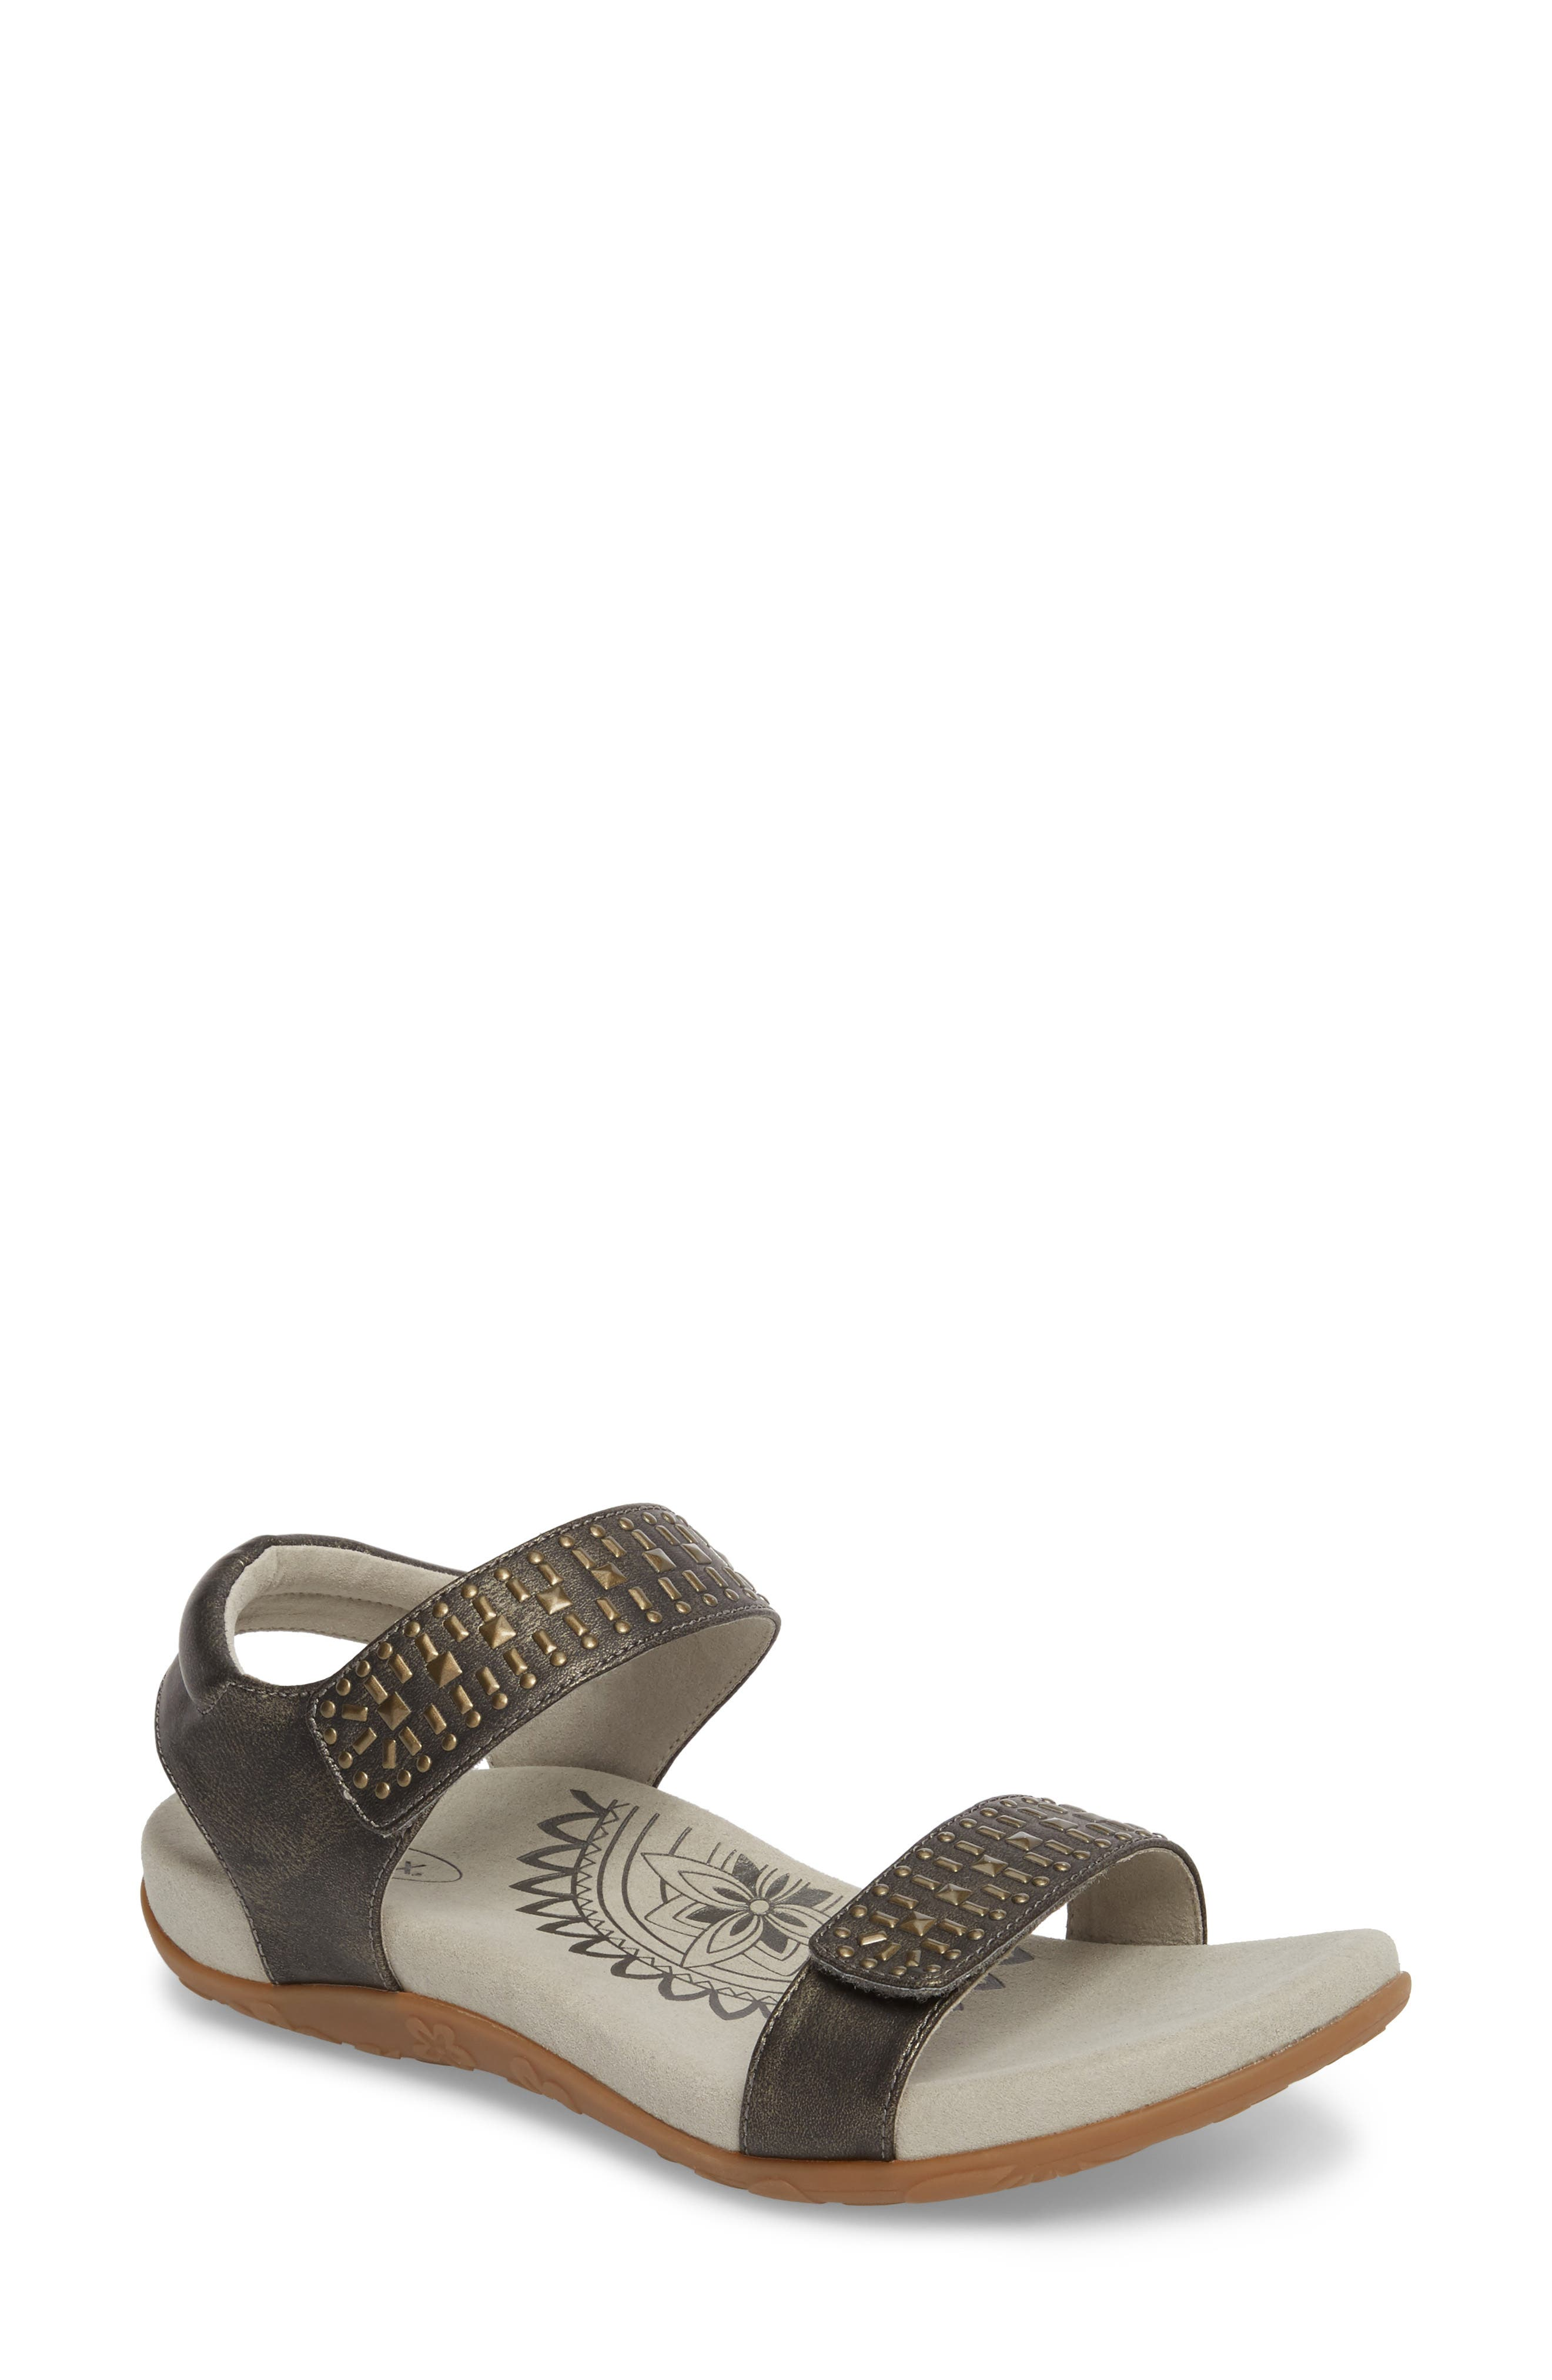 AETREX 'Maria' Sandal, Main, color, PEWTER LEATHER